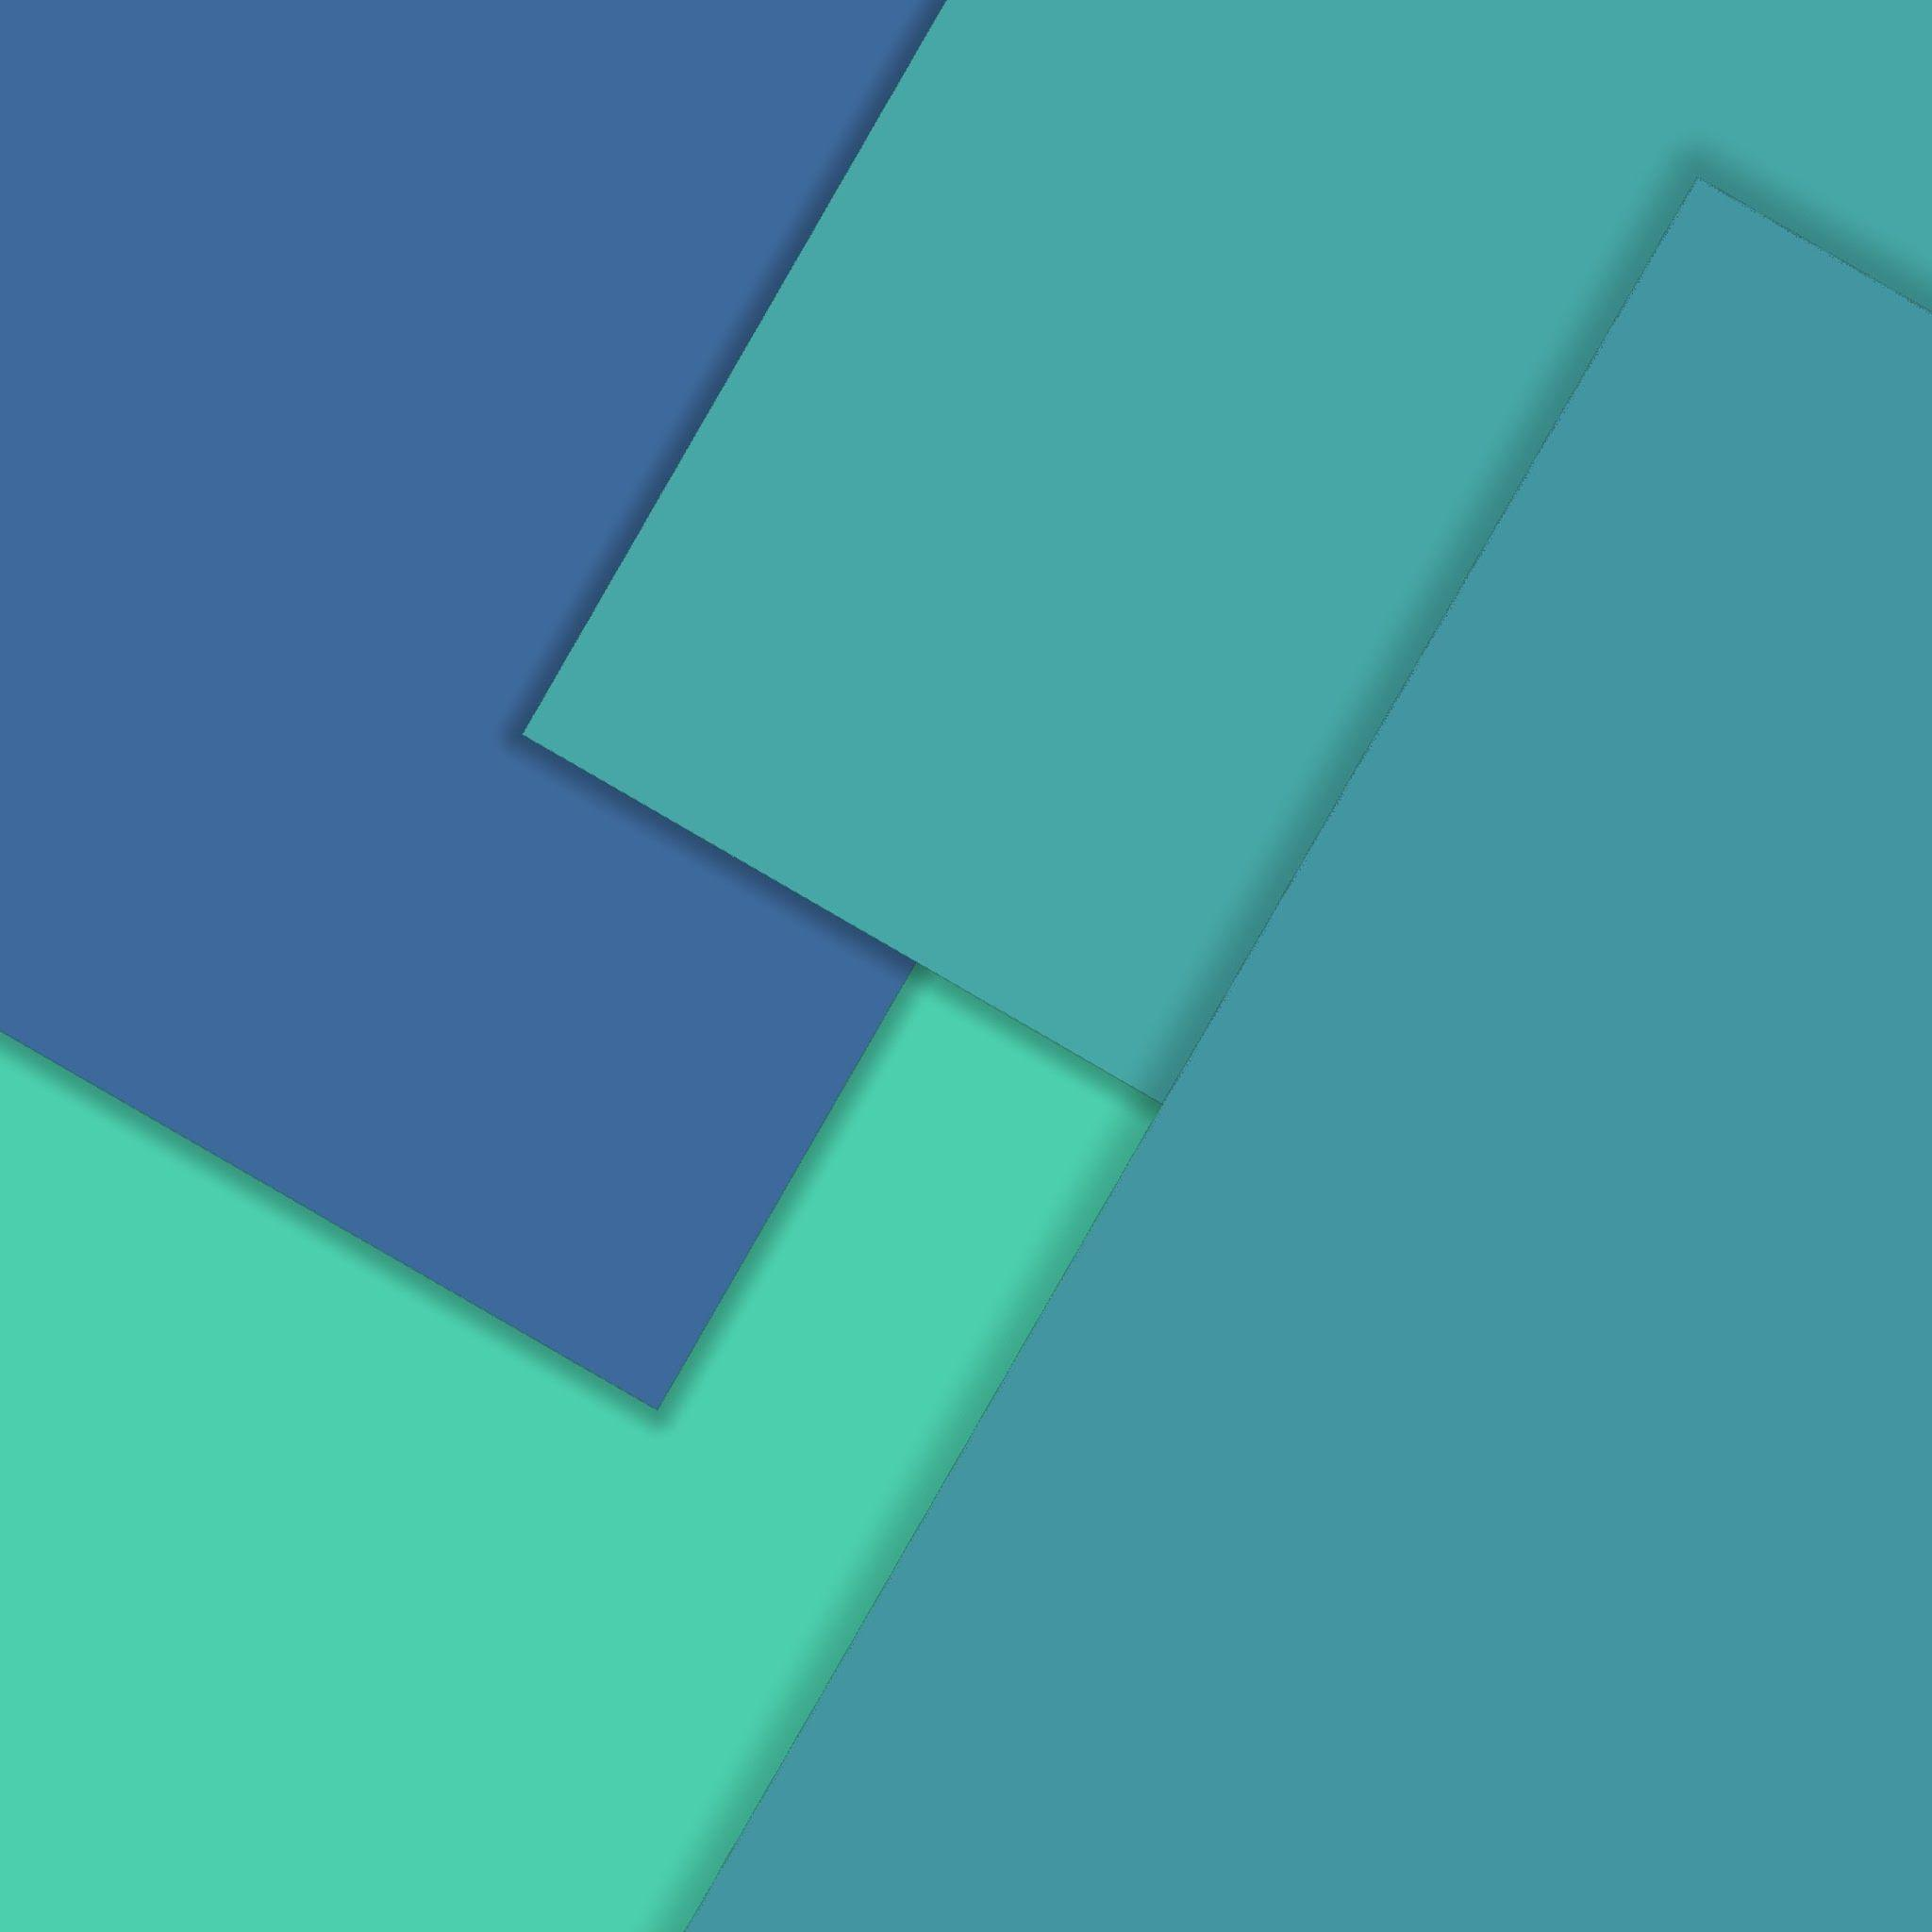 20 Google Material Design HD Wallpapers | Vigorous Art